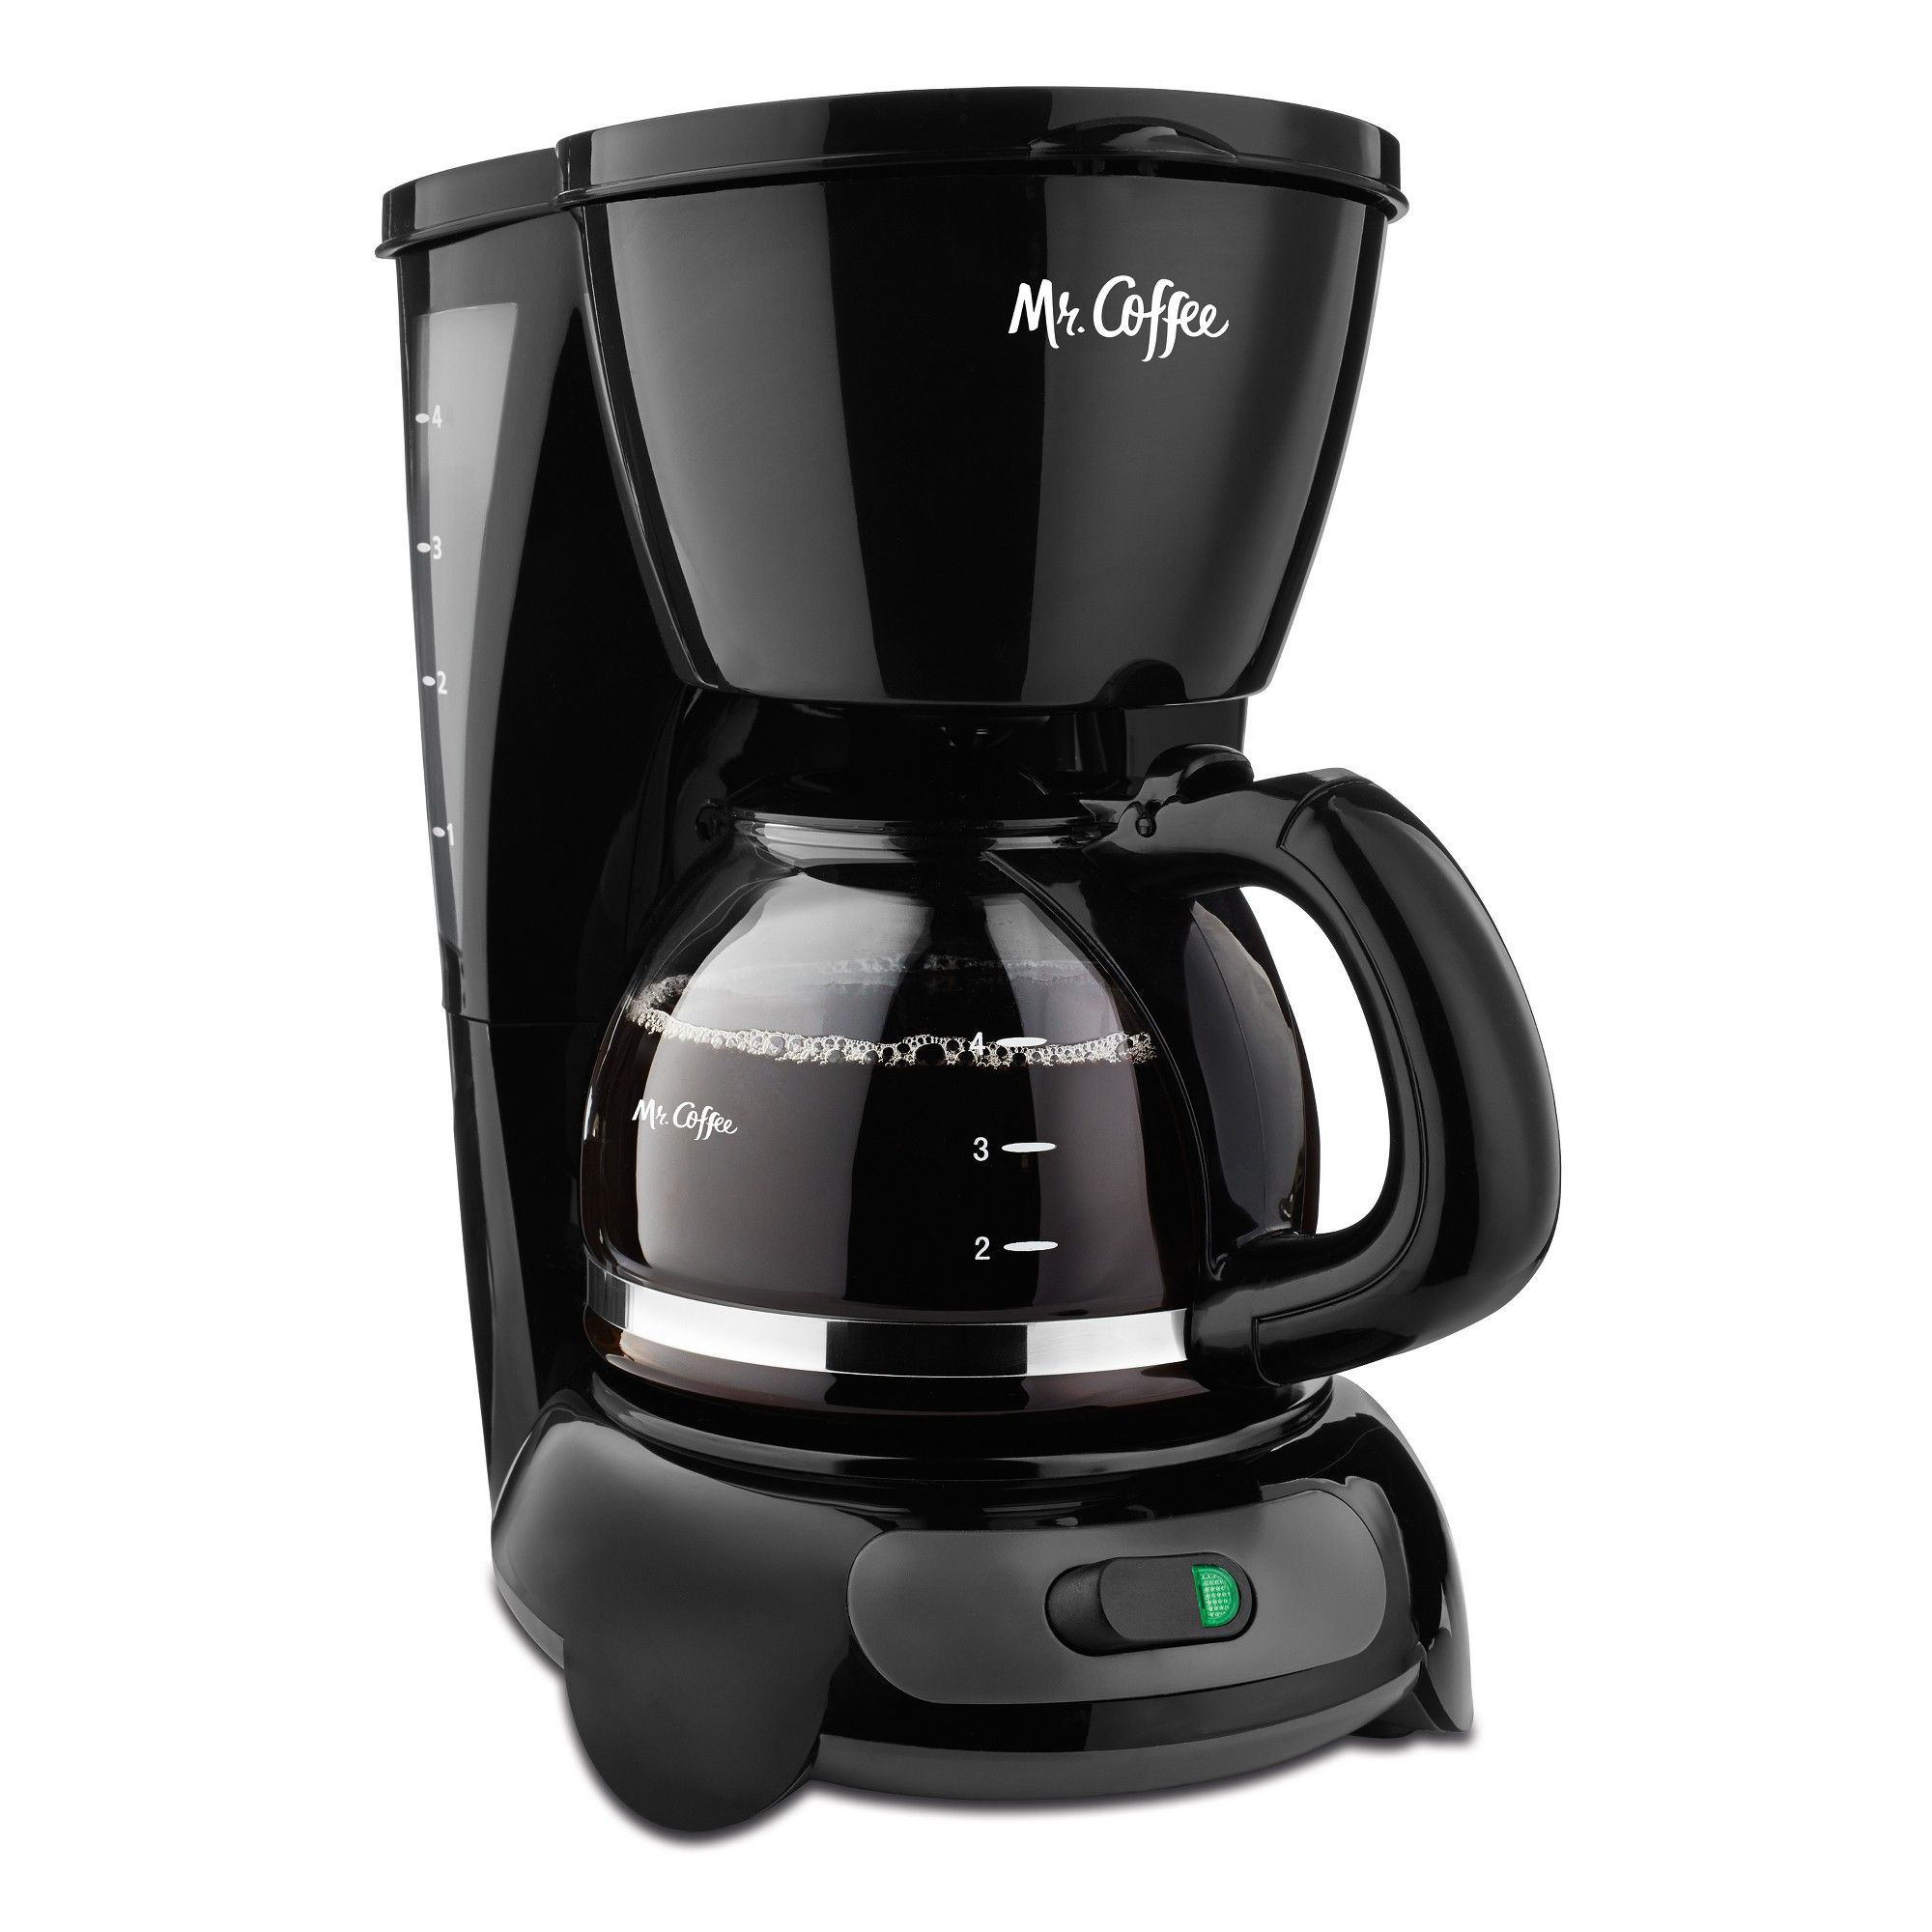 Mr. Coffee 4 Cup Switch Coffee Maker Black in 2020